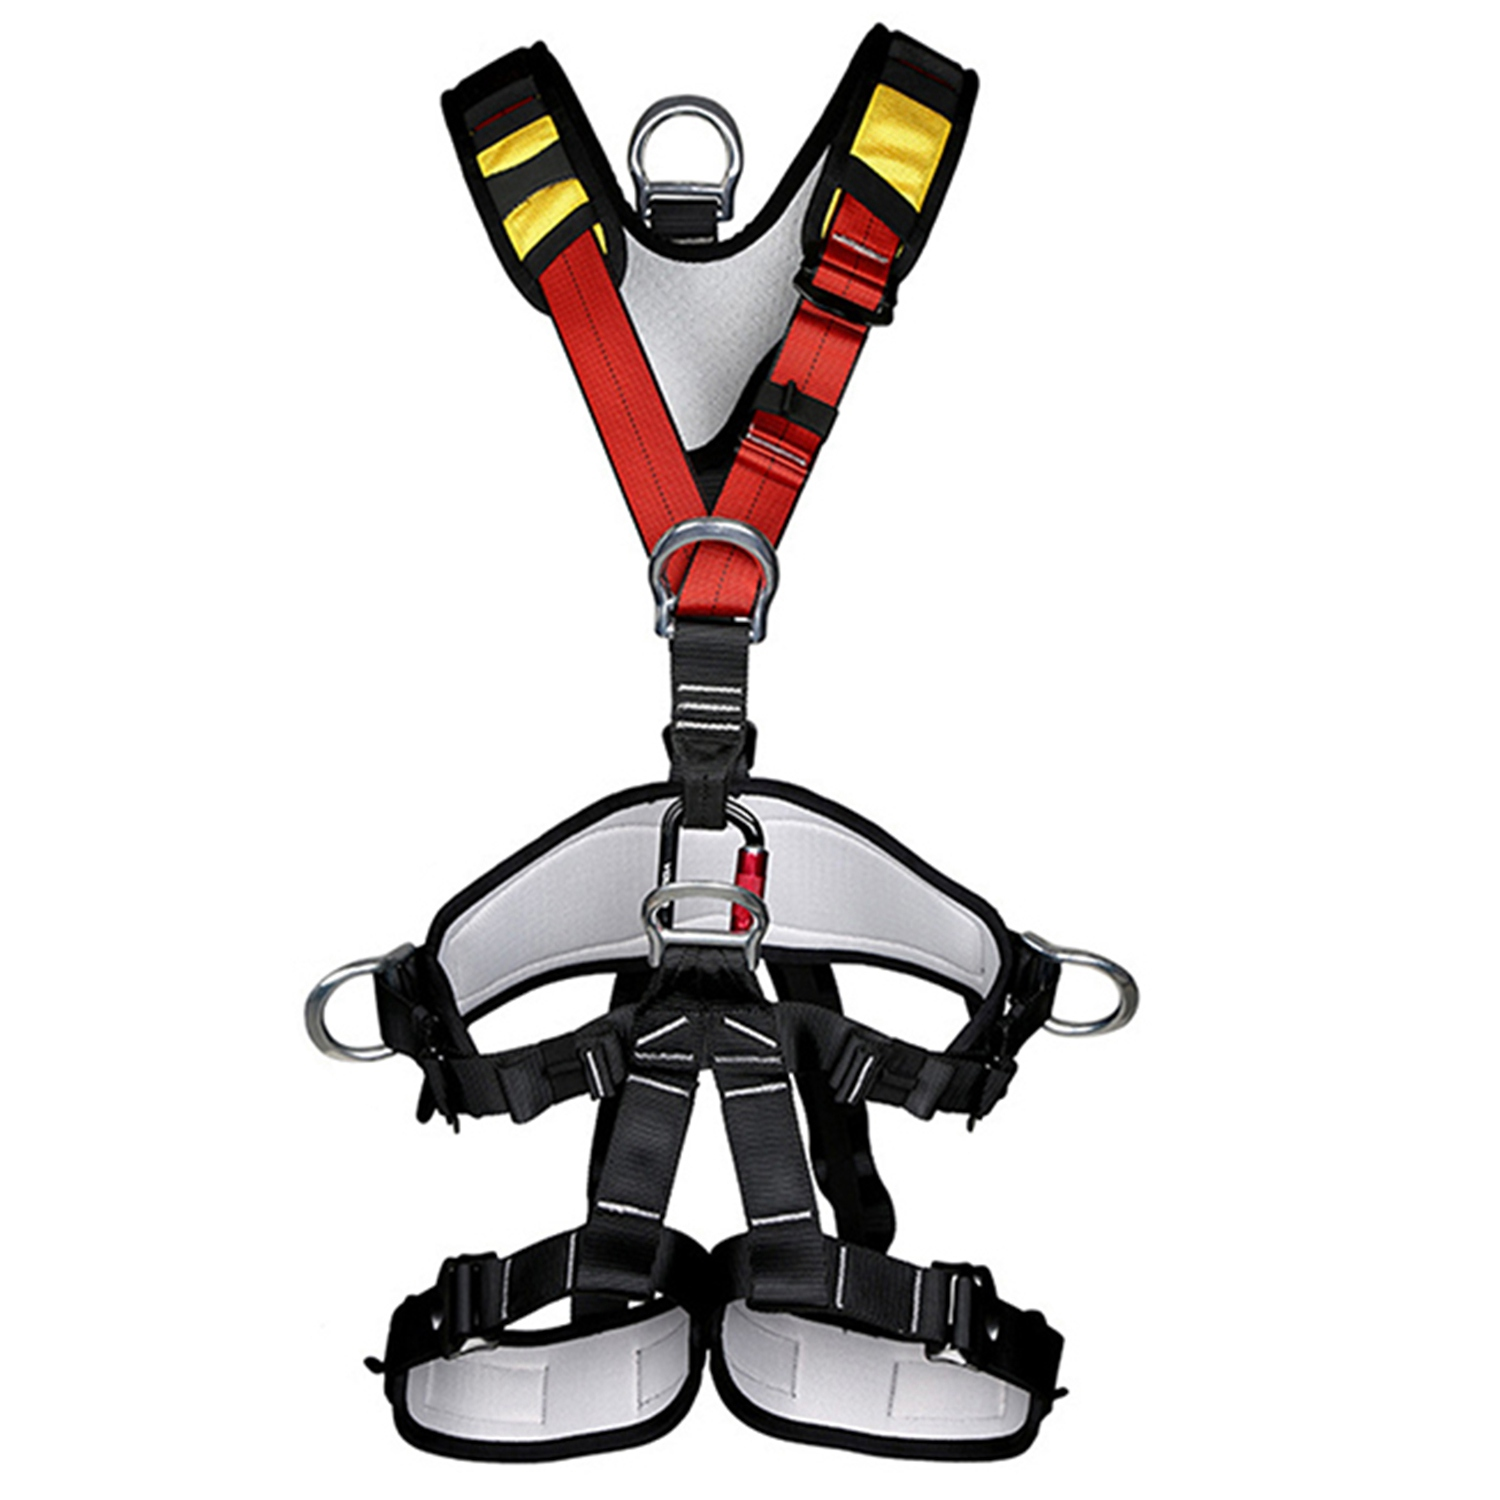 Outdoor Climbing Rock Rappelling Mountaineering Accessories Body Wearing Seat Belt Sitting Waist Bust ProtectionOutdoor Climbing Rock Rappelling Mountaineering Accessories Body Wearing Seat Belt Sitting Waist Bust Protection